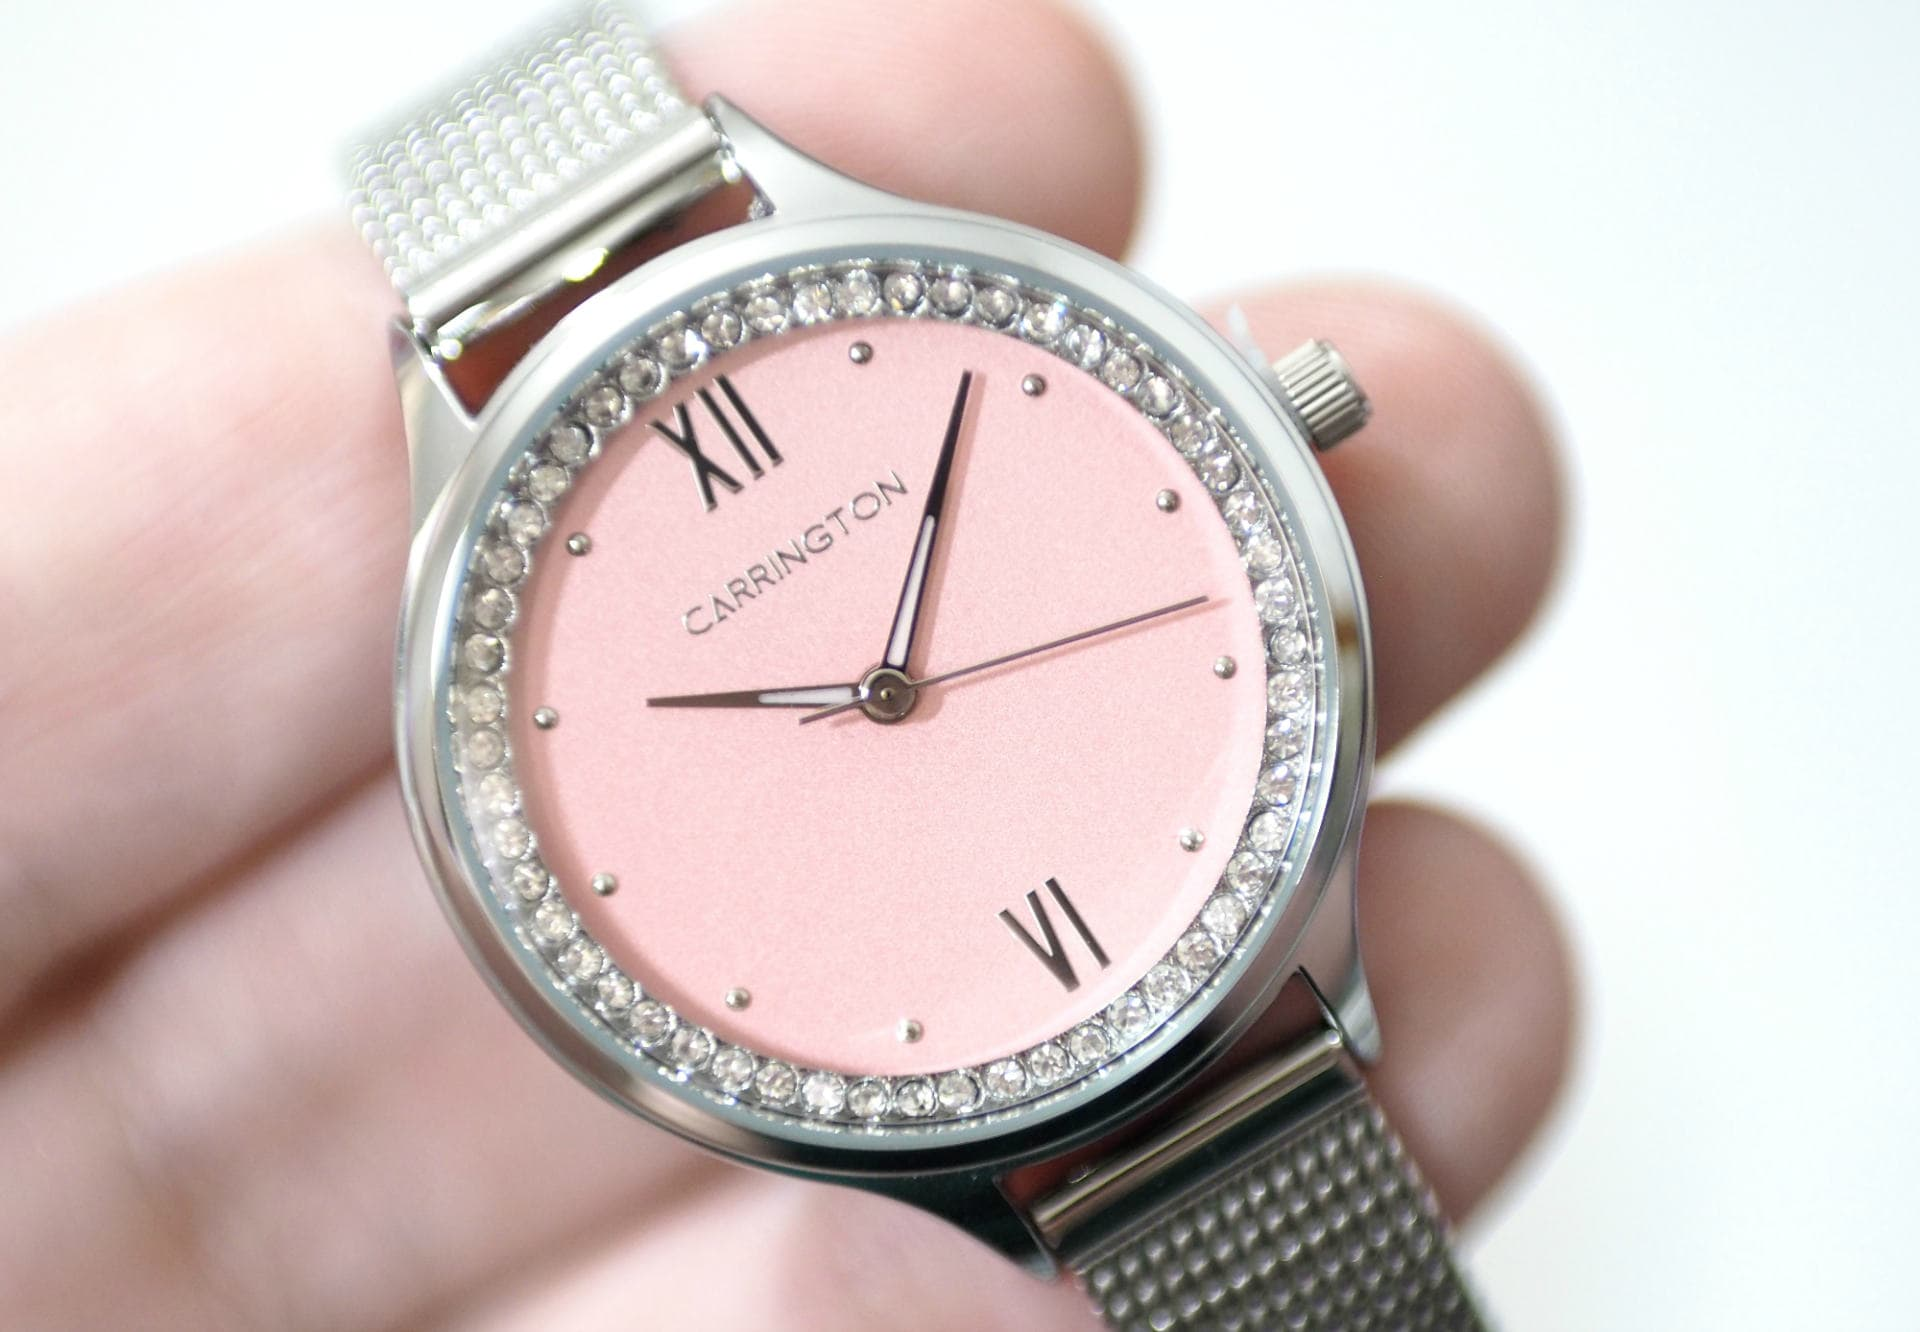 Carrington and Company Elsie Mesh Band Watch PLUS Giveaways!